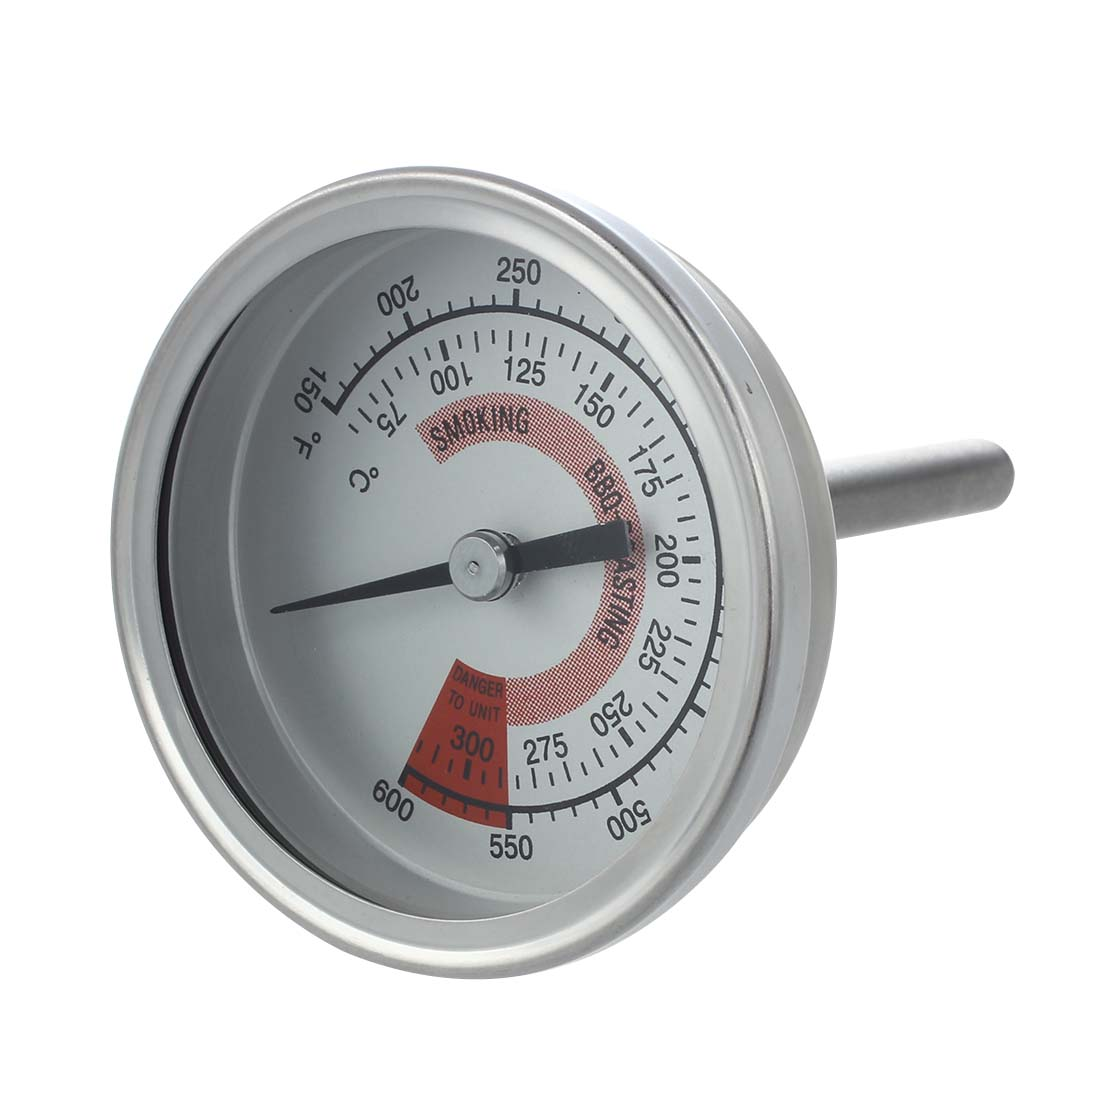 Practical Barbecue BBQ Pit Smoker Grill Thermometer Gauge 300